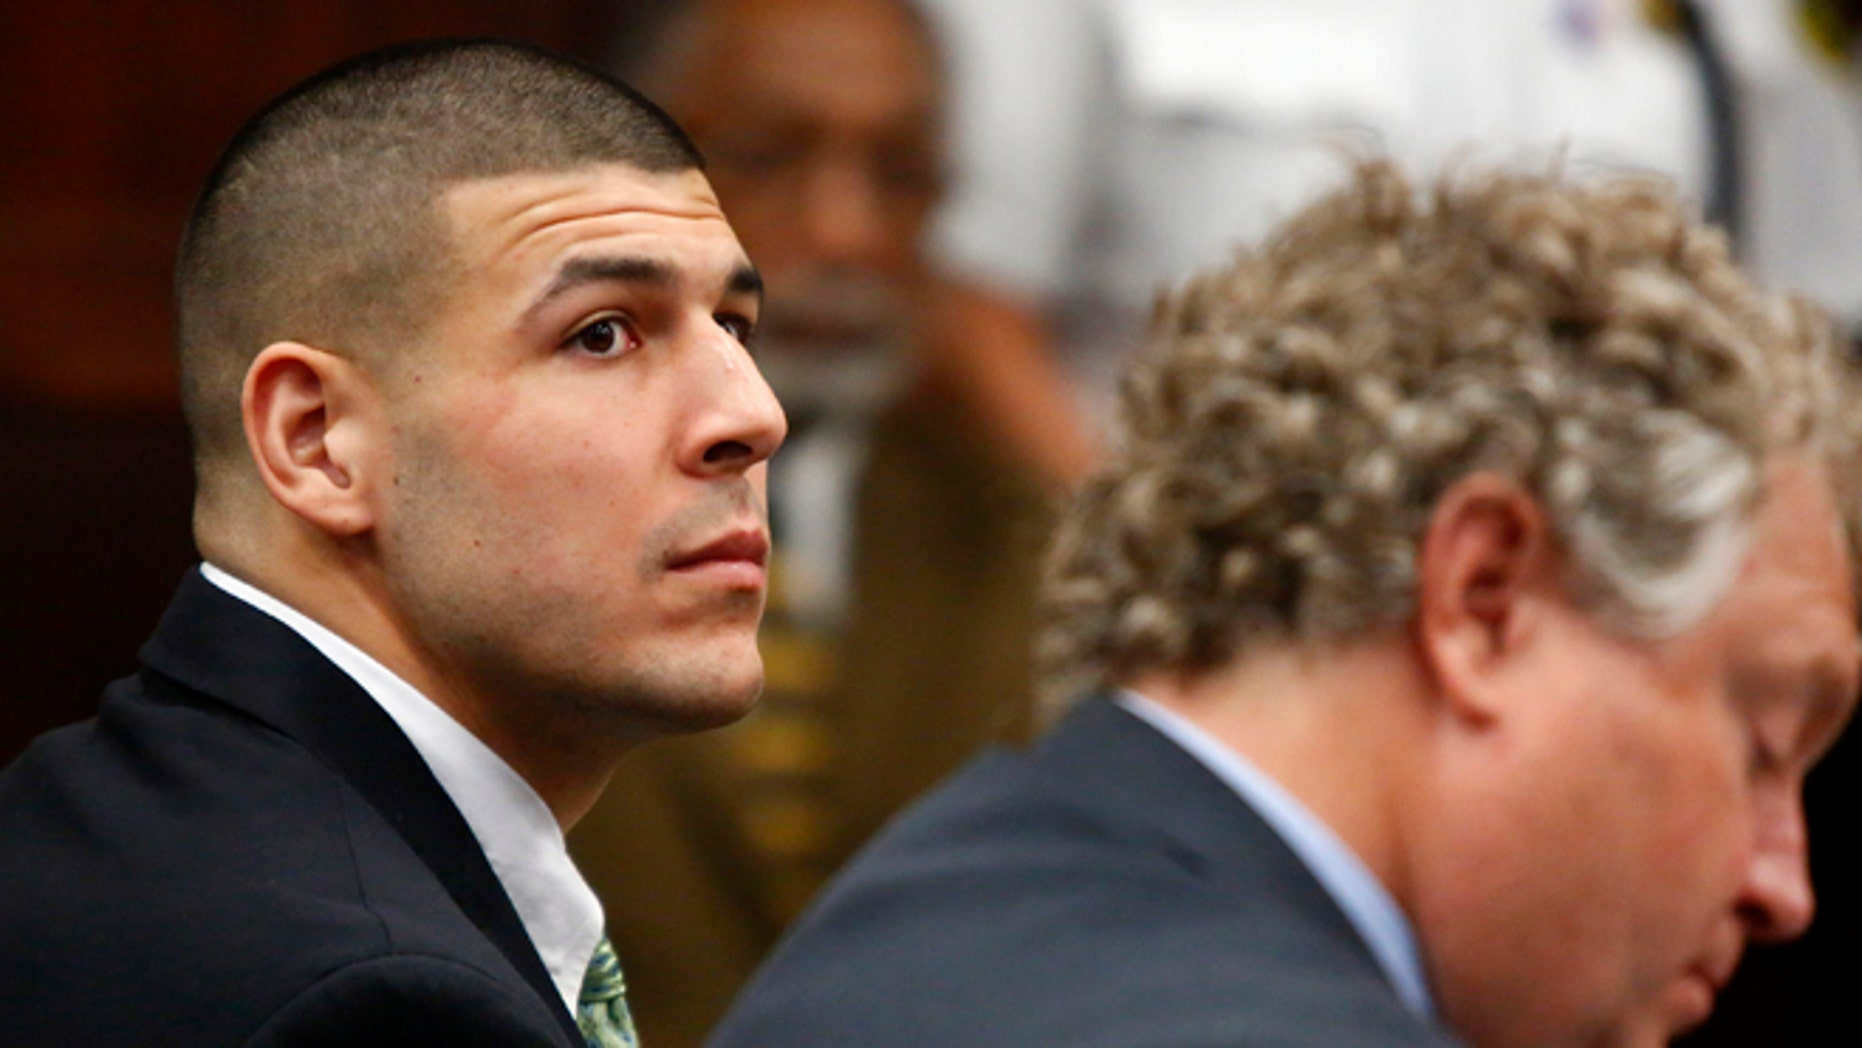 FILE -  Hernandez, jailed while awaiting trial in the killing of three men, is Mr. July in the Florida Gators' 2014 sports calendar, with the school saying Tuesday, July 1, 2014, that officials approved the publication months before he was charged with murder.